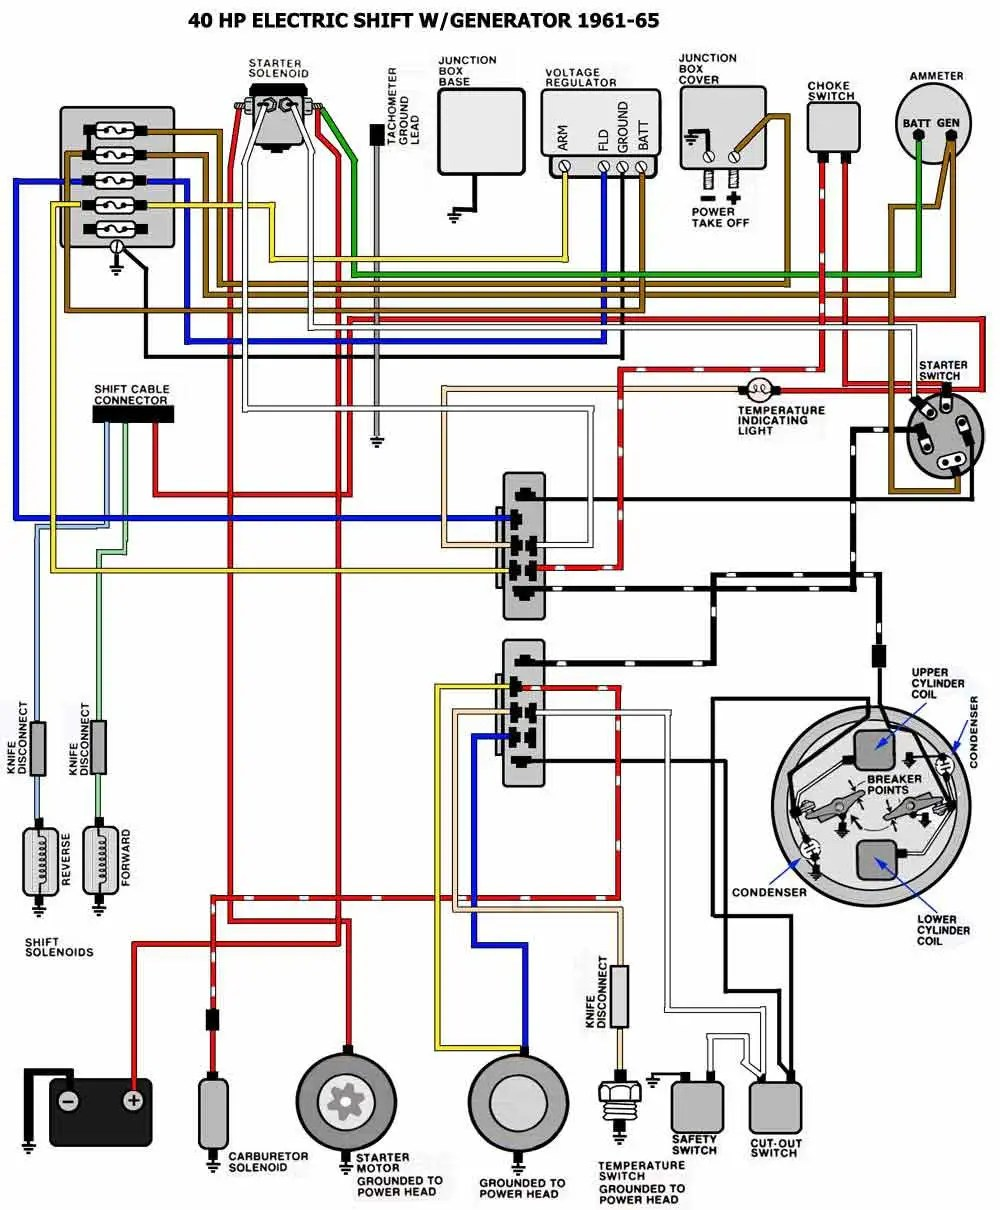 medium resolution of johnson neutral safety switch wiring diagram wiring diagram load johnson neutral safety switch wiring diagram